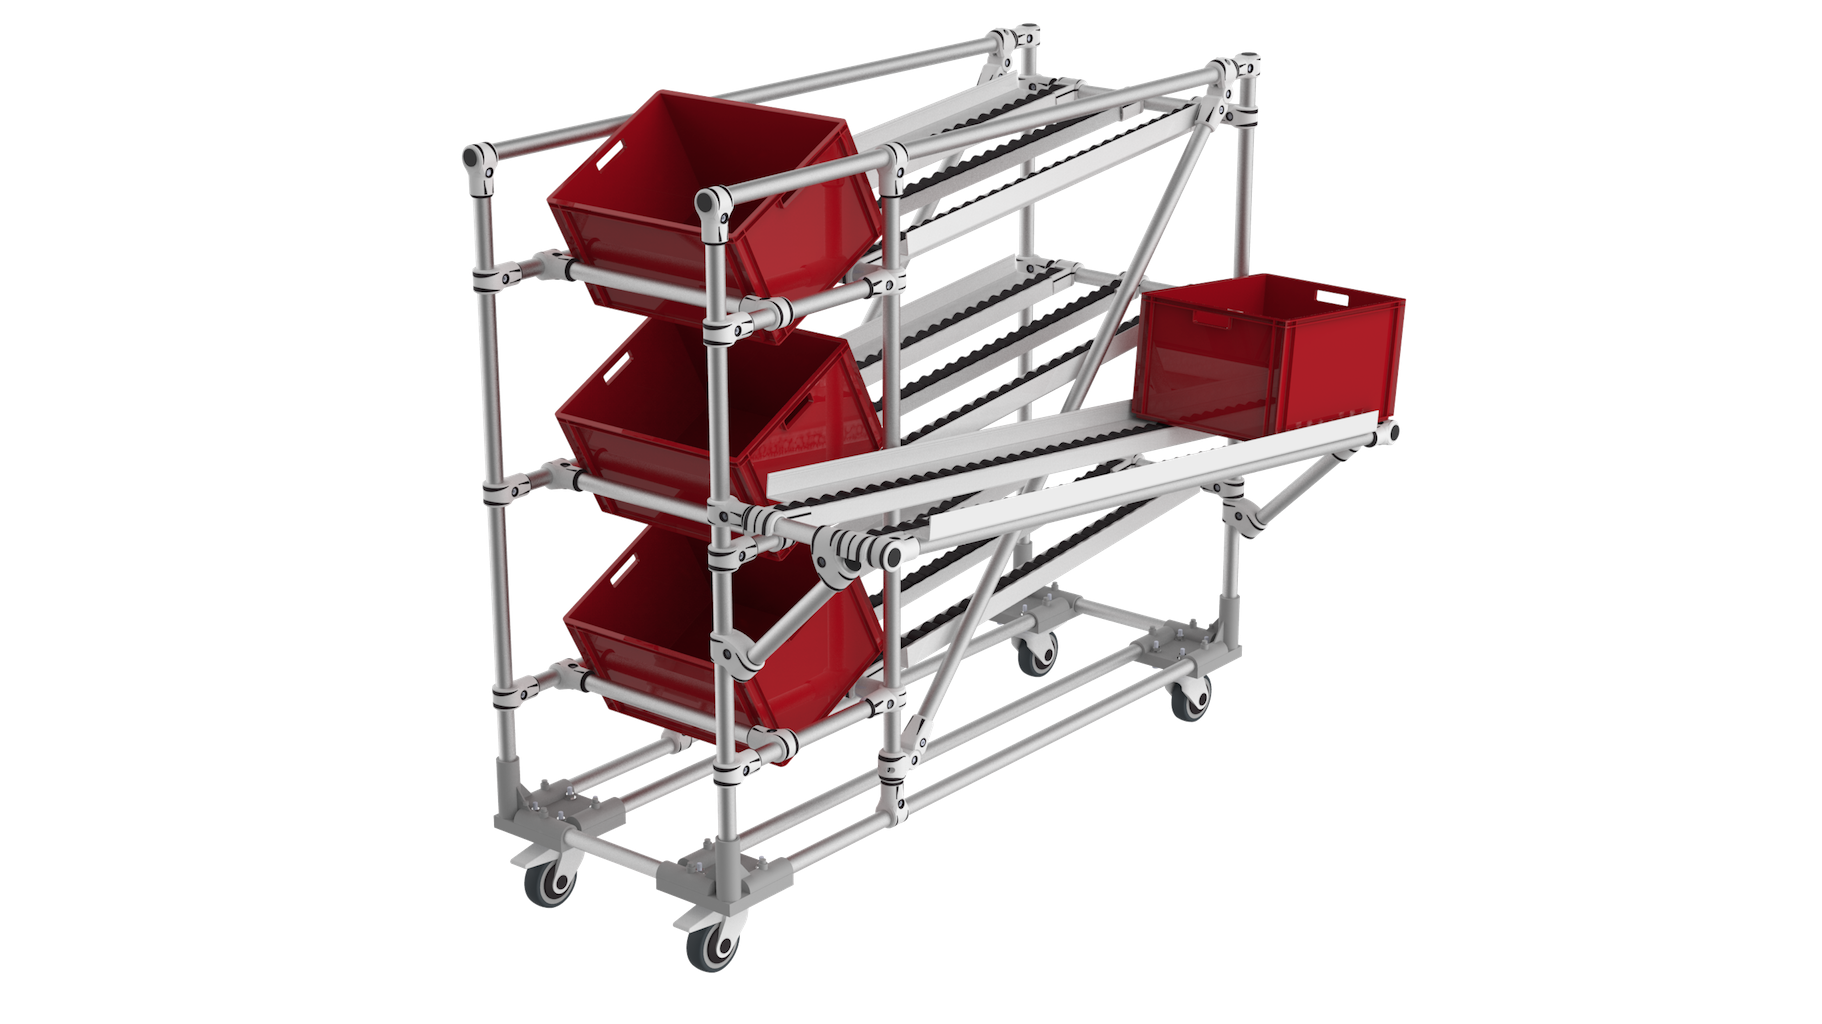 Flow rack lean manufacturing